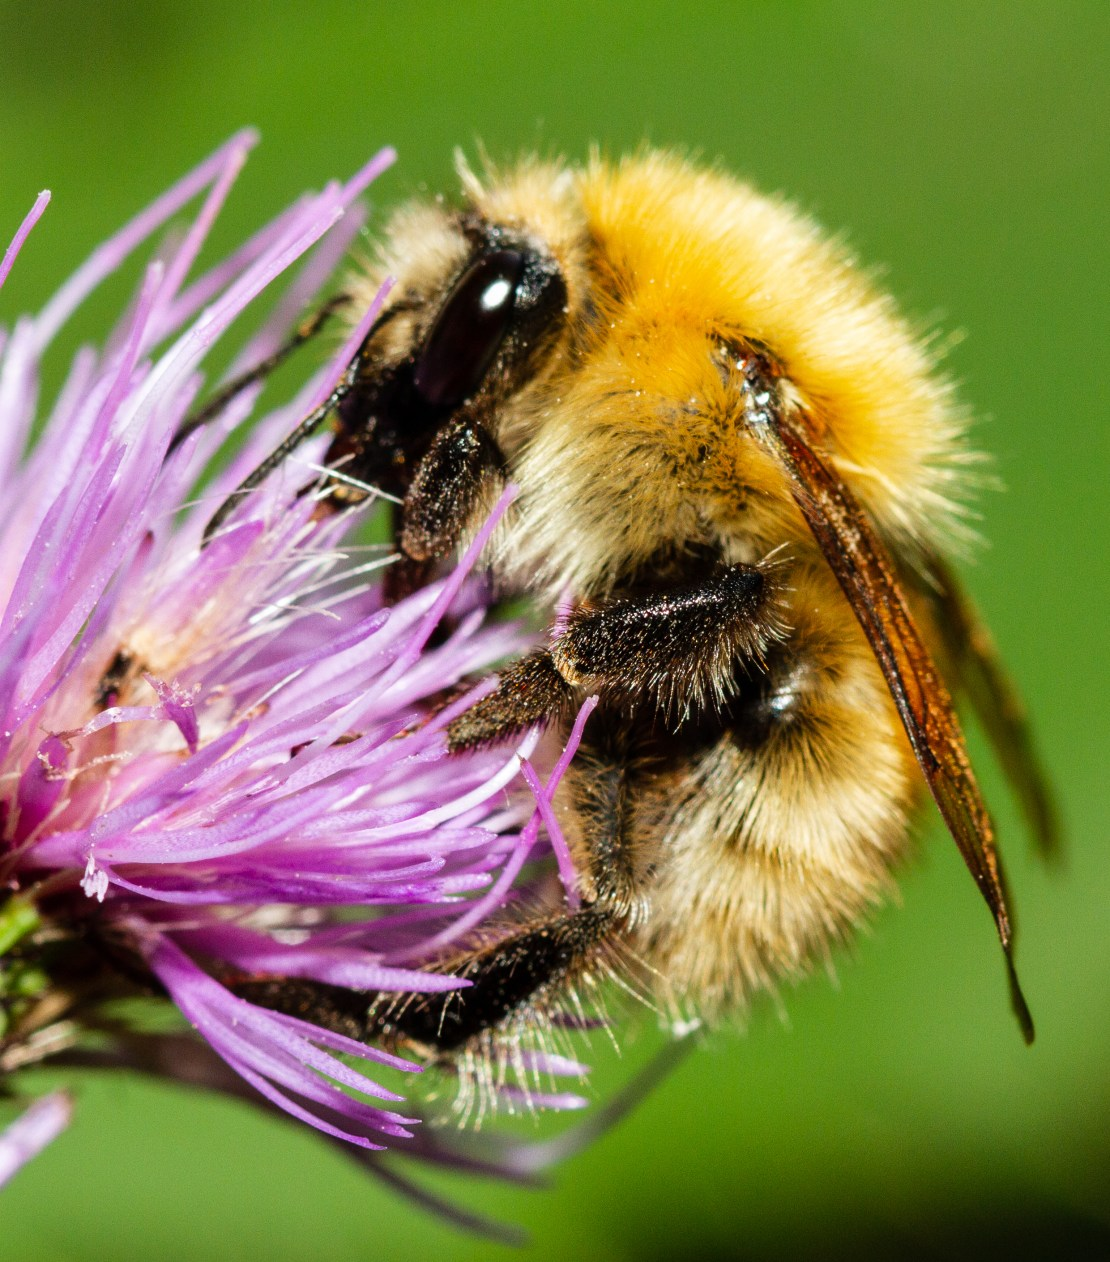 A bumblebee collecting pollen from a thistle.